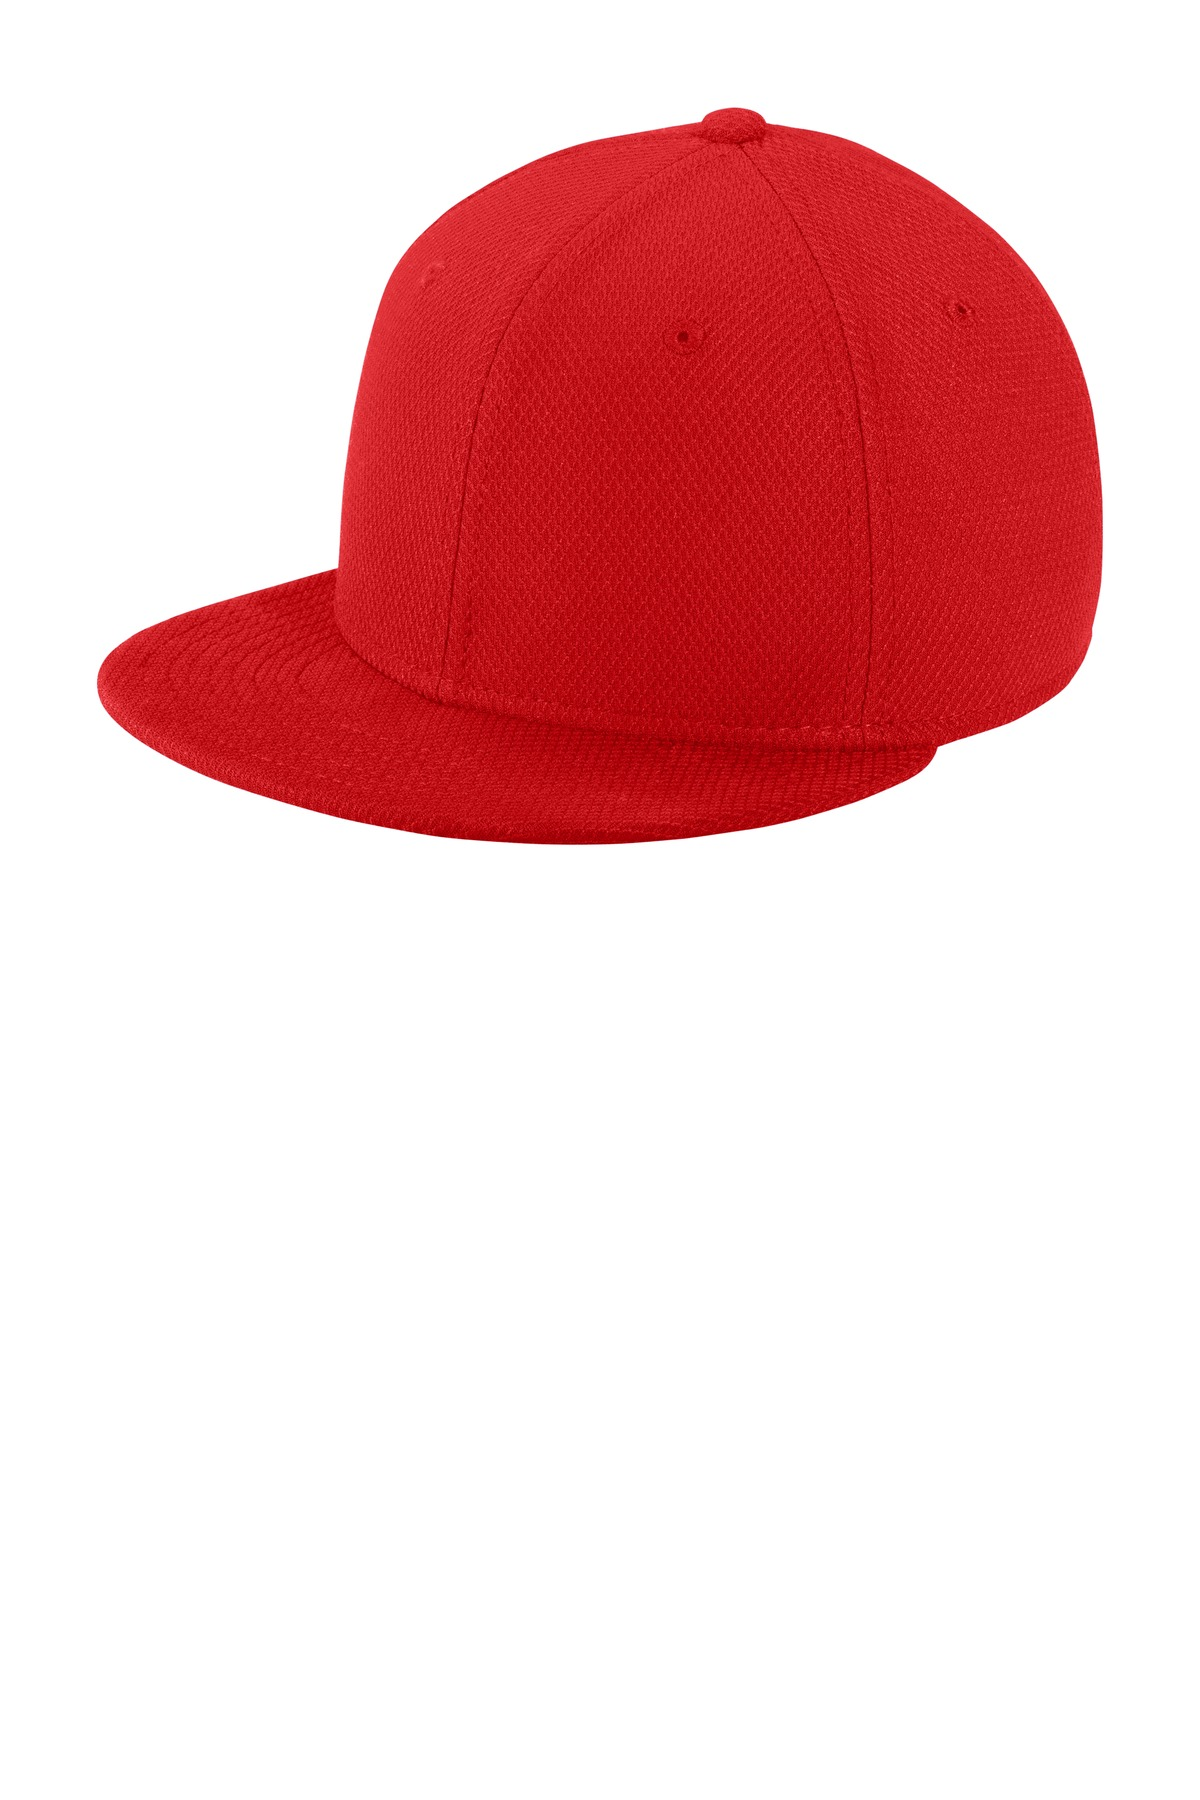 New Era  ®  Youth Original Fit Diamond Era Flat Bill Snapback Cap. NE304 - Scarlet